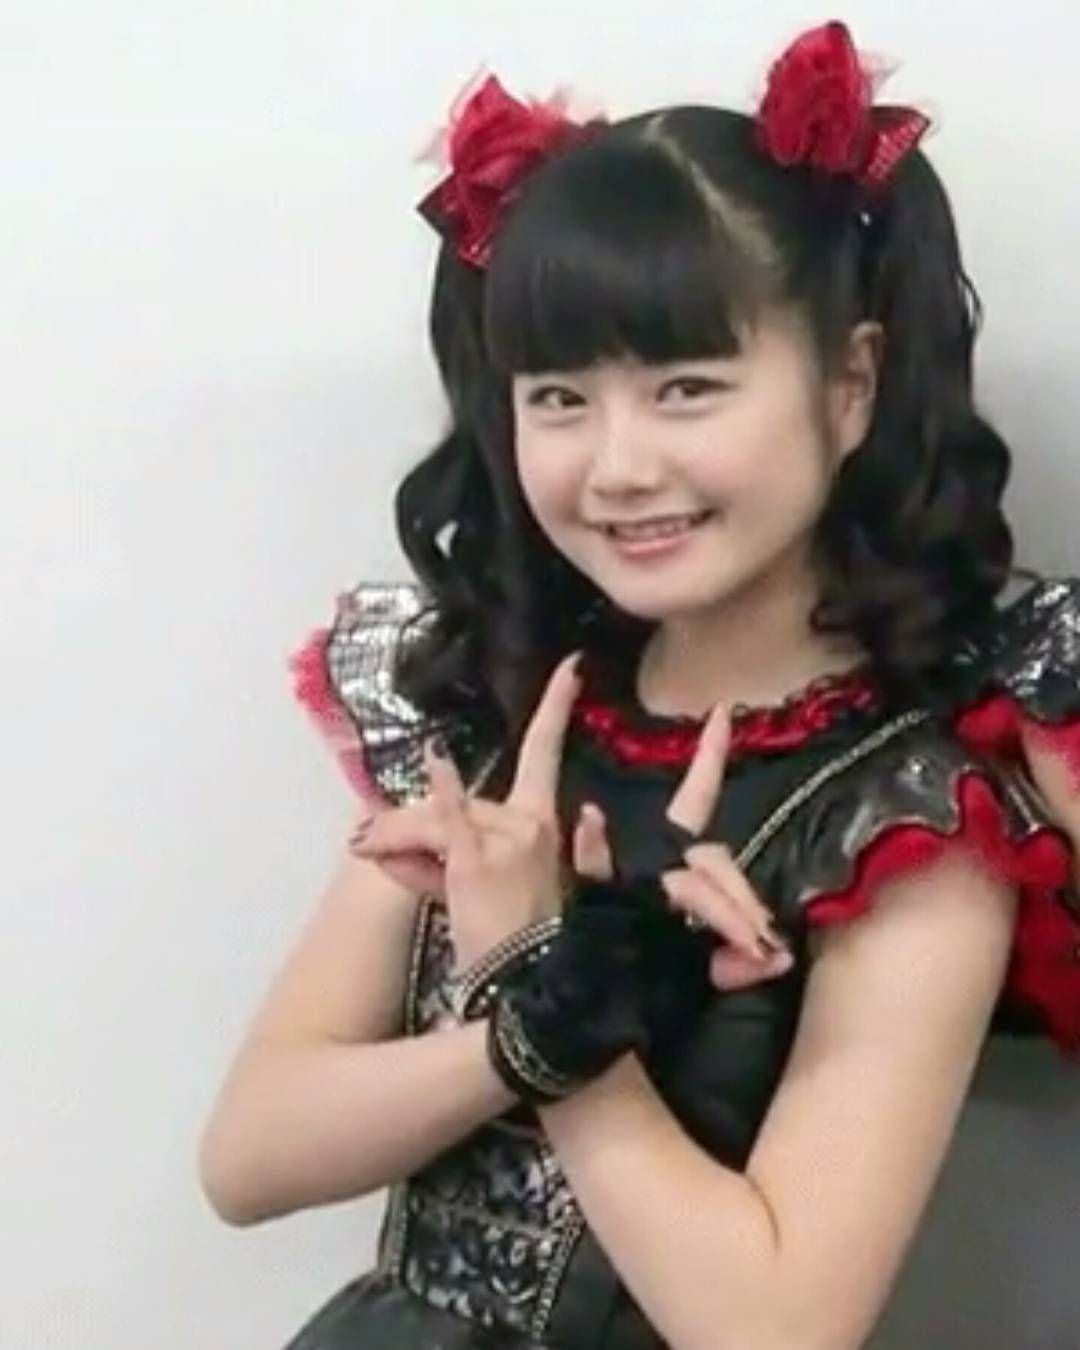 """❤We Are The One Babymetal ❤ on Instagram: """"My Babymetal stuff has still not arrived so i've found some Yui to make things a little better #babymetal #yuimetal #mizunoyui #yuimizuno"""""""